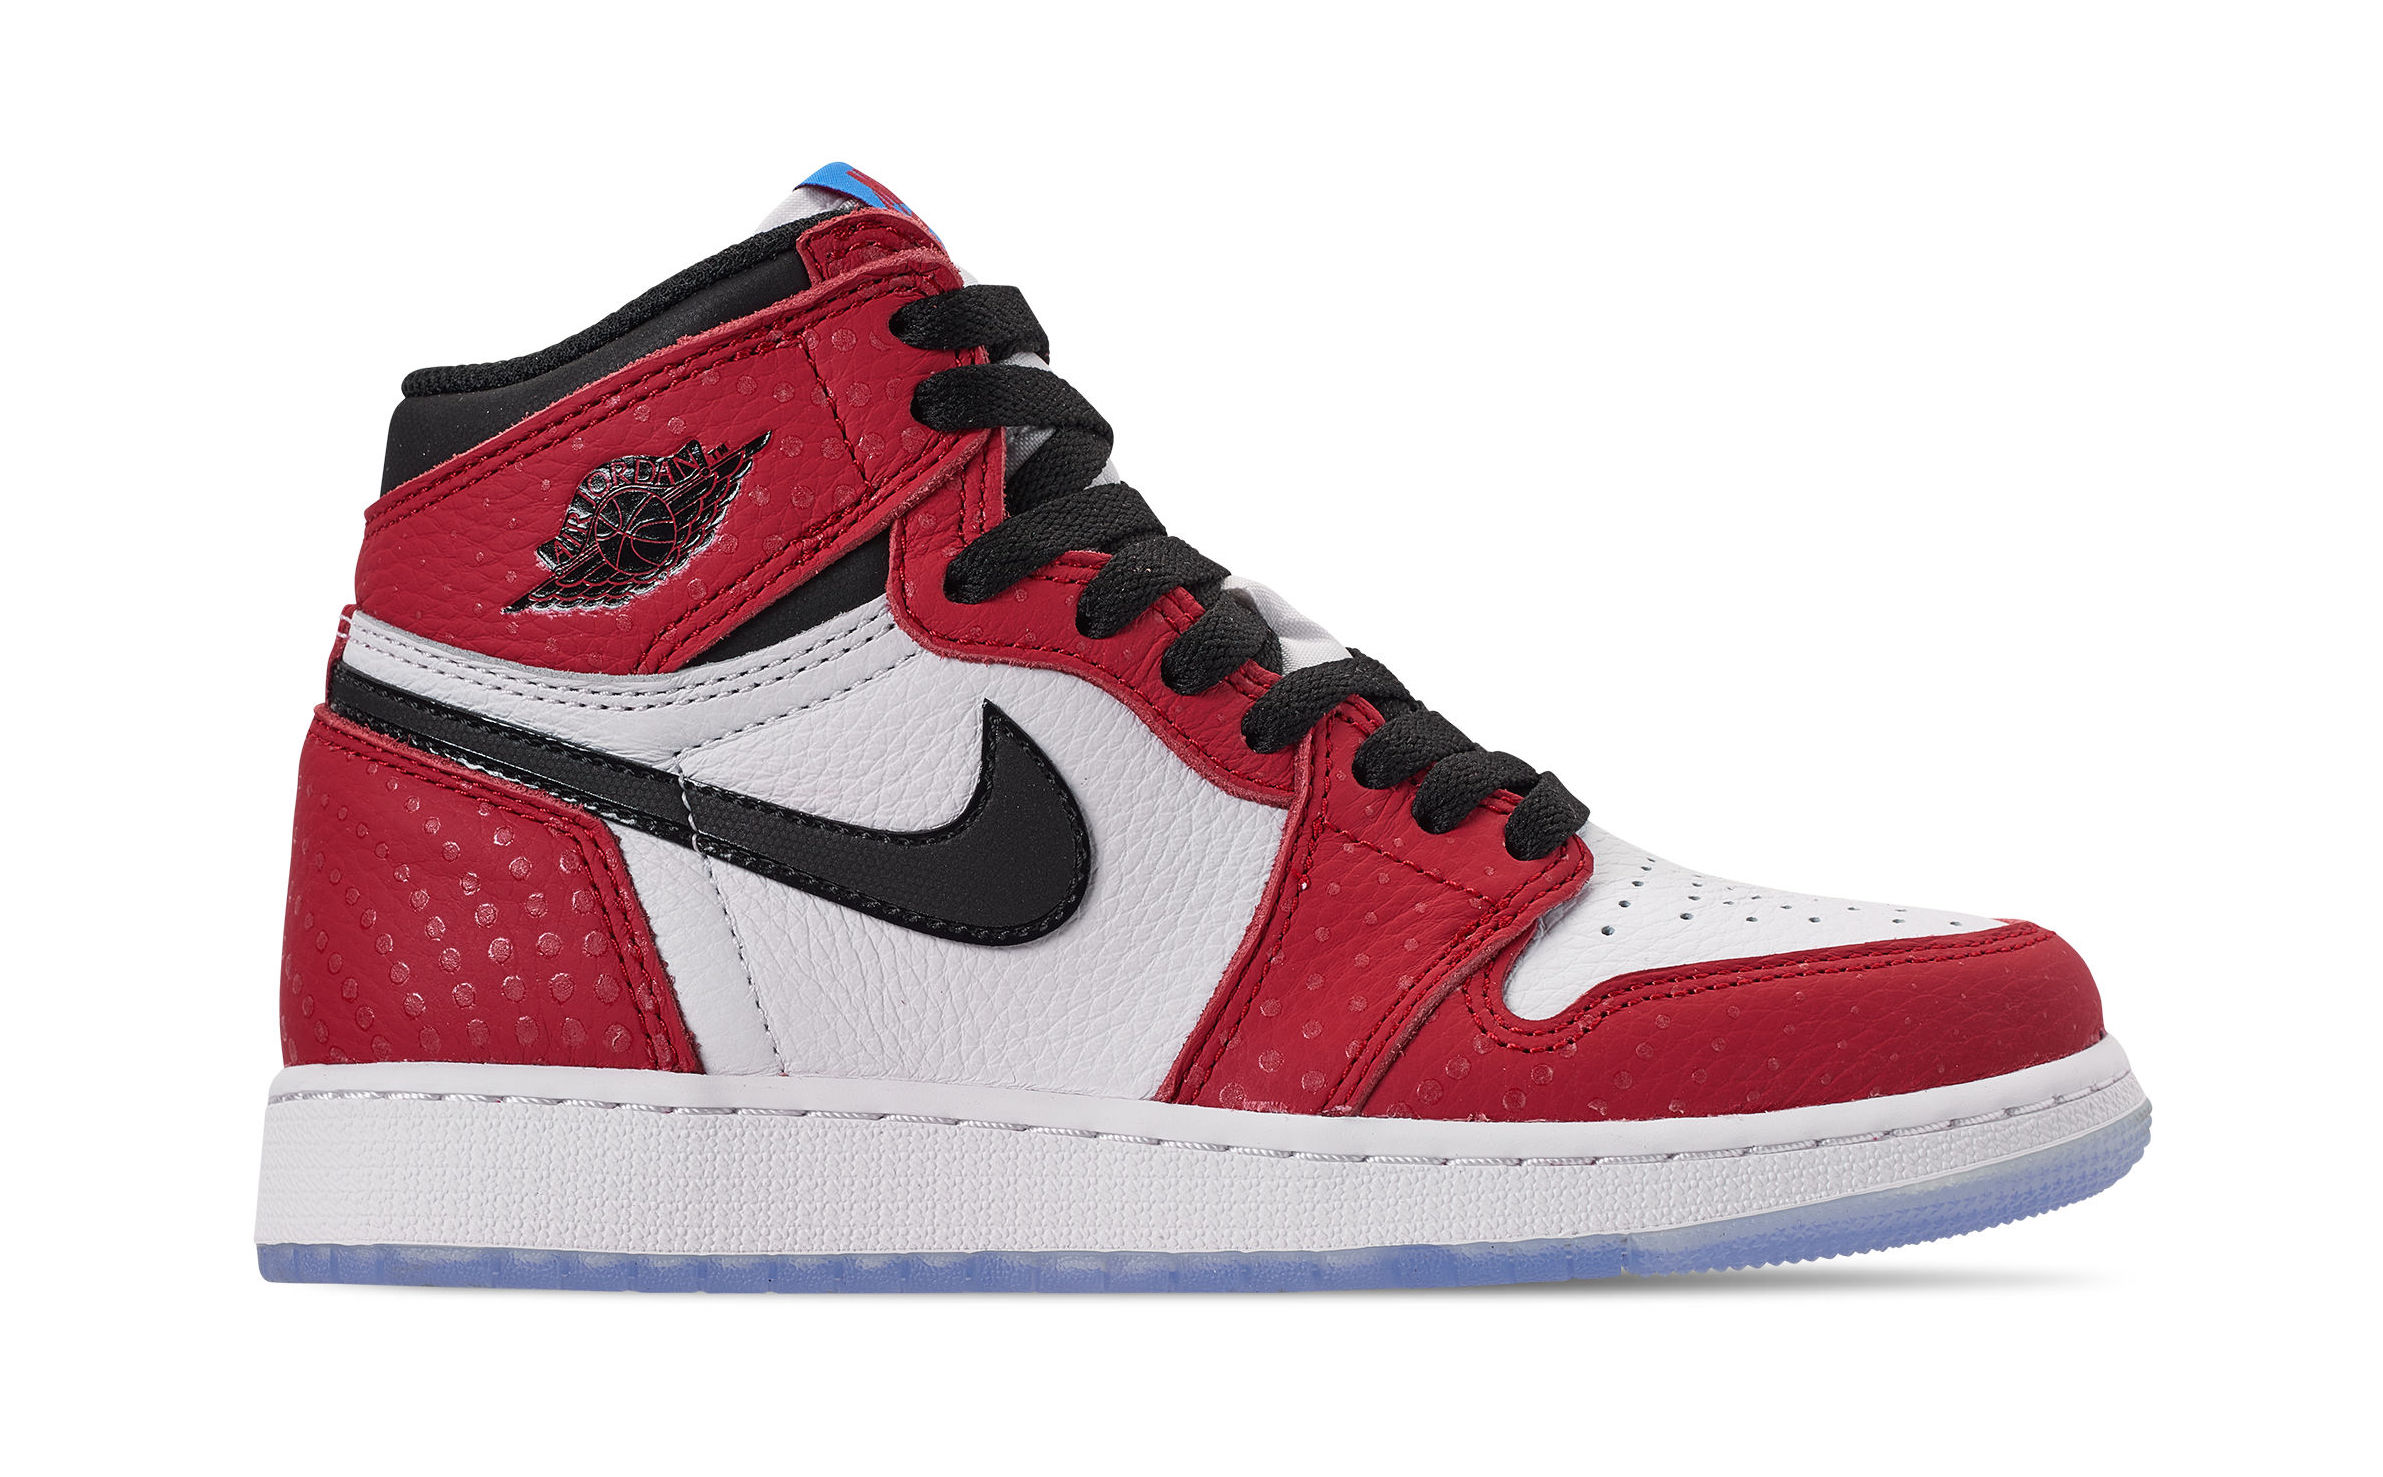 b59c0656424409 You can pick up the Air Jordan 1 Retro High OG Origin Story (Into the  Spider-Verse) for  160 in adult and grade school sizes at select Jordan  Brand ...